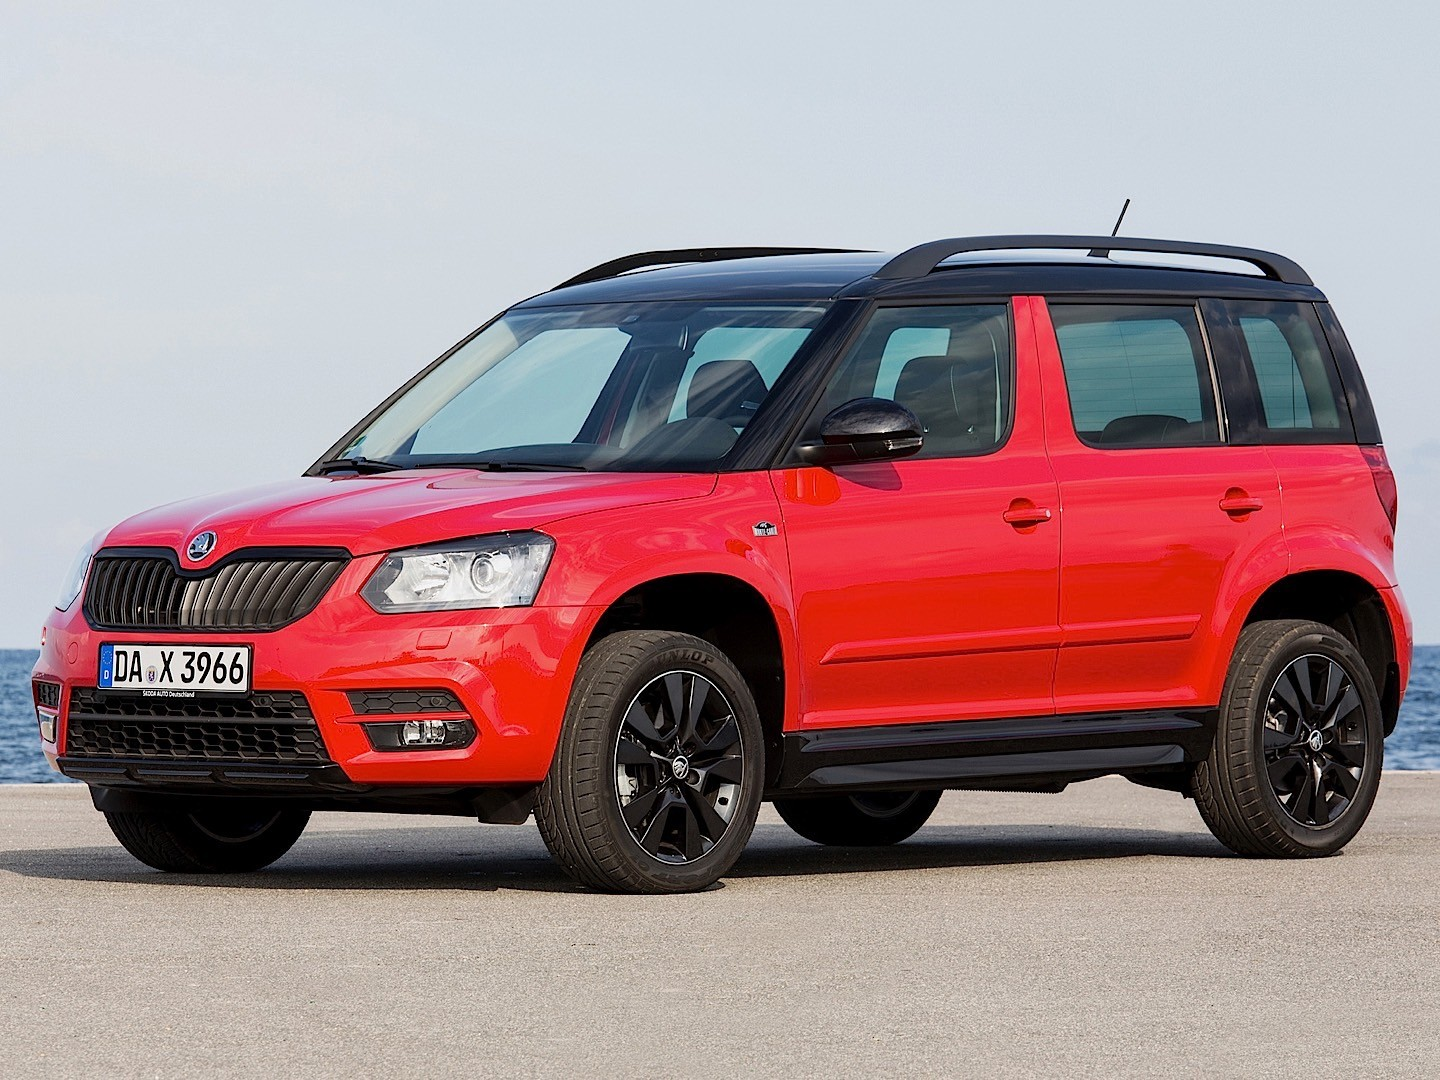 skoda yeti 2013 2014 2015 2016 autoevolution pictures. Black Bedroom Furniture Sets. Home Design Ideas